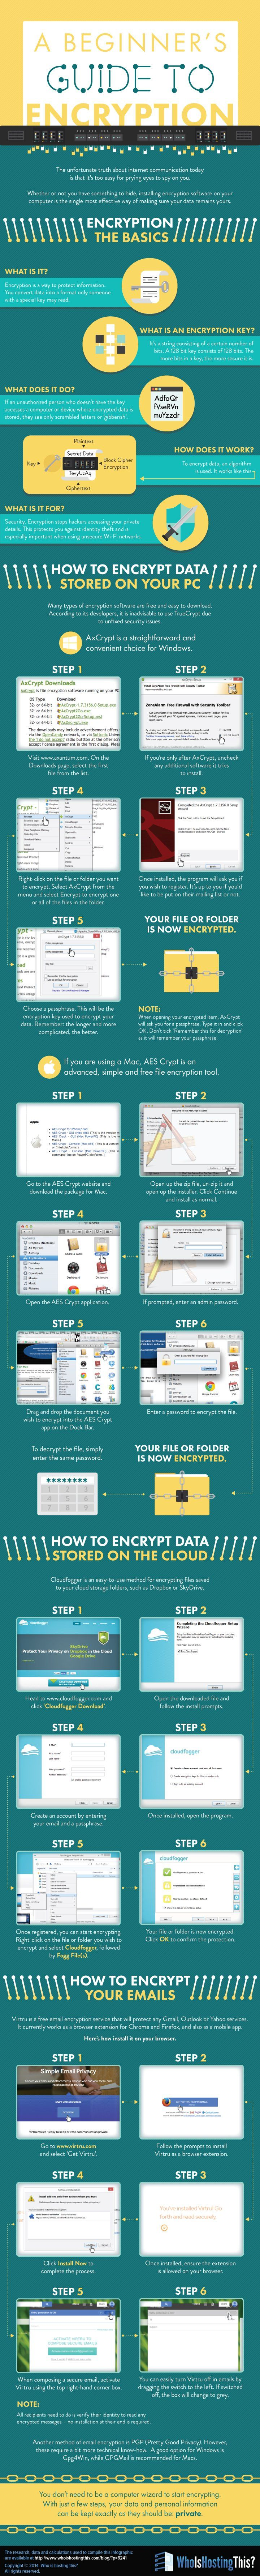 A beginners guide to encryption #infographic